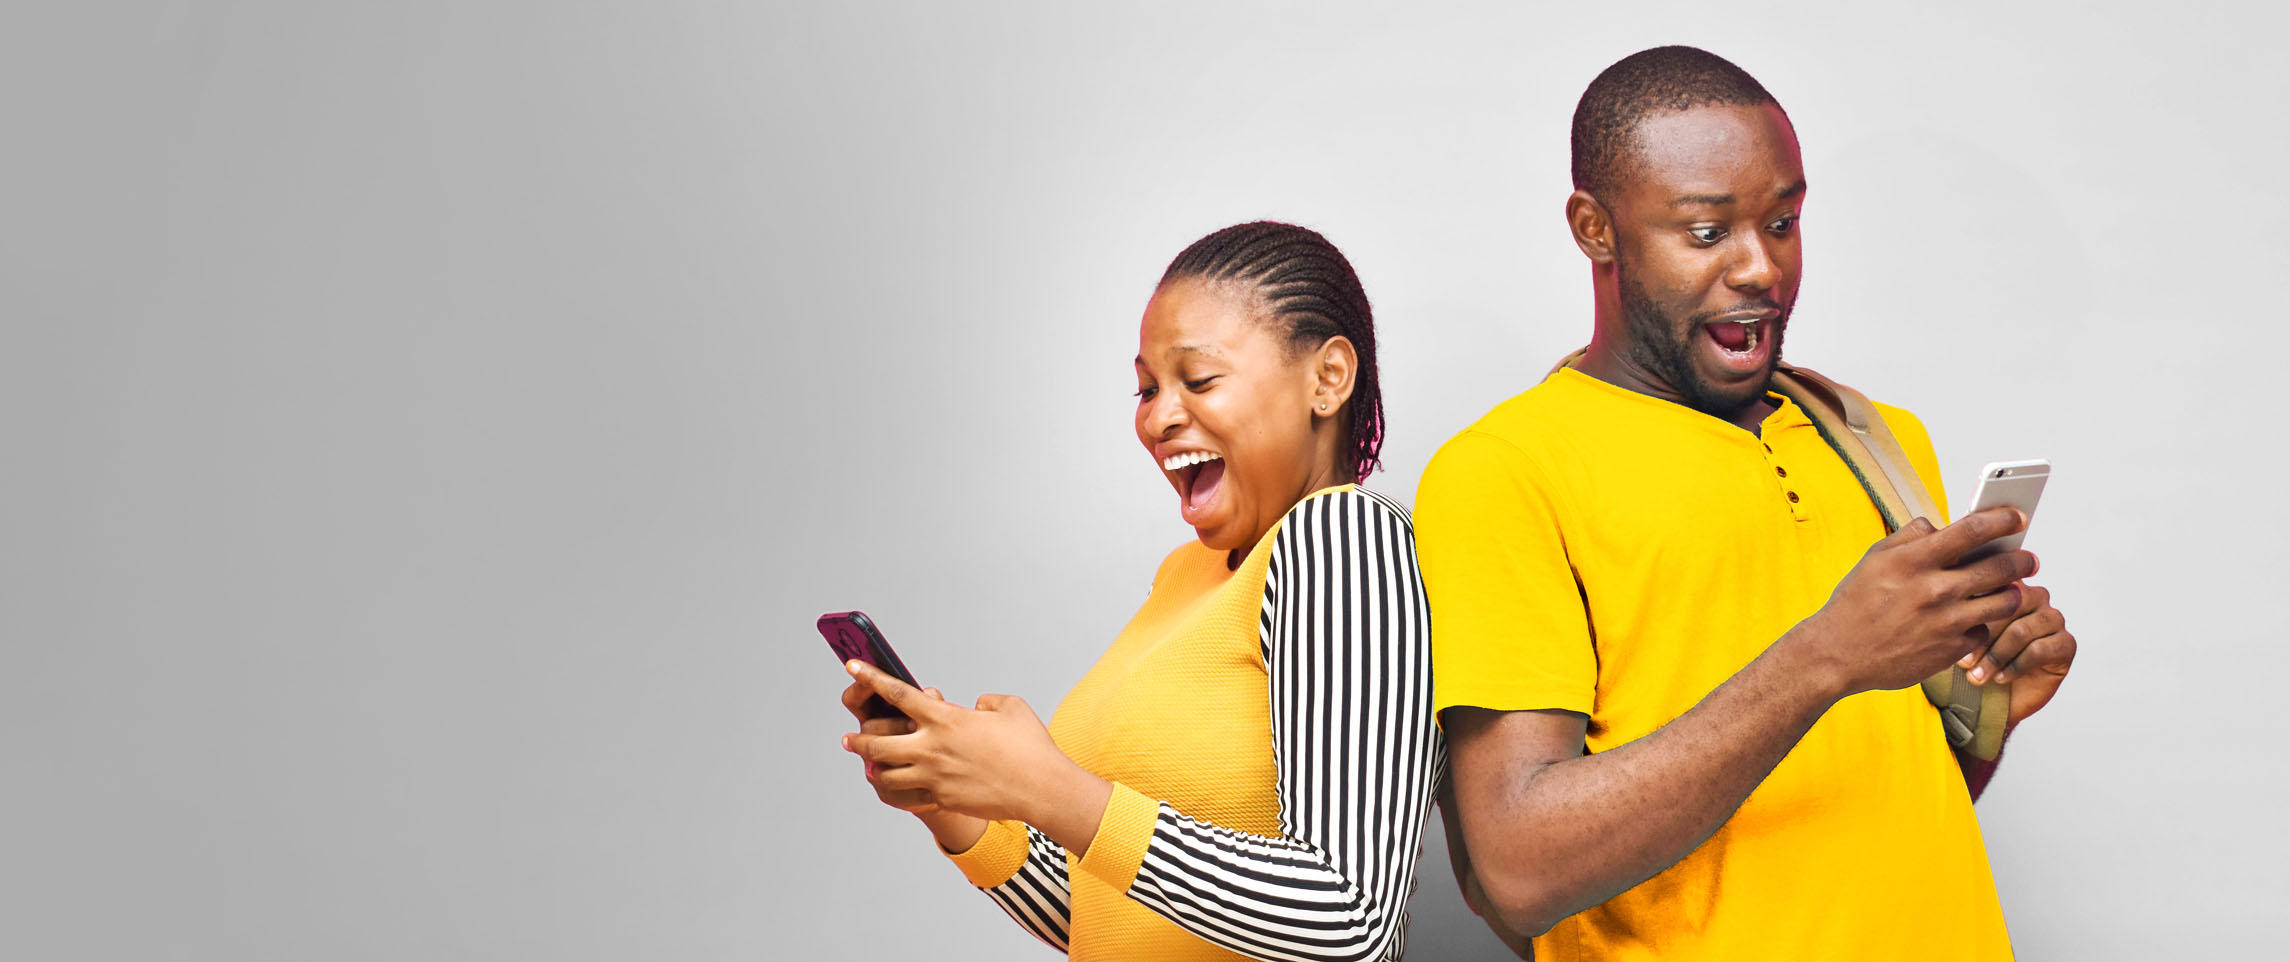 Transfer Airtime on MTN 2021: How to Transfer Credit to Another MTN Sim